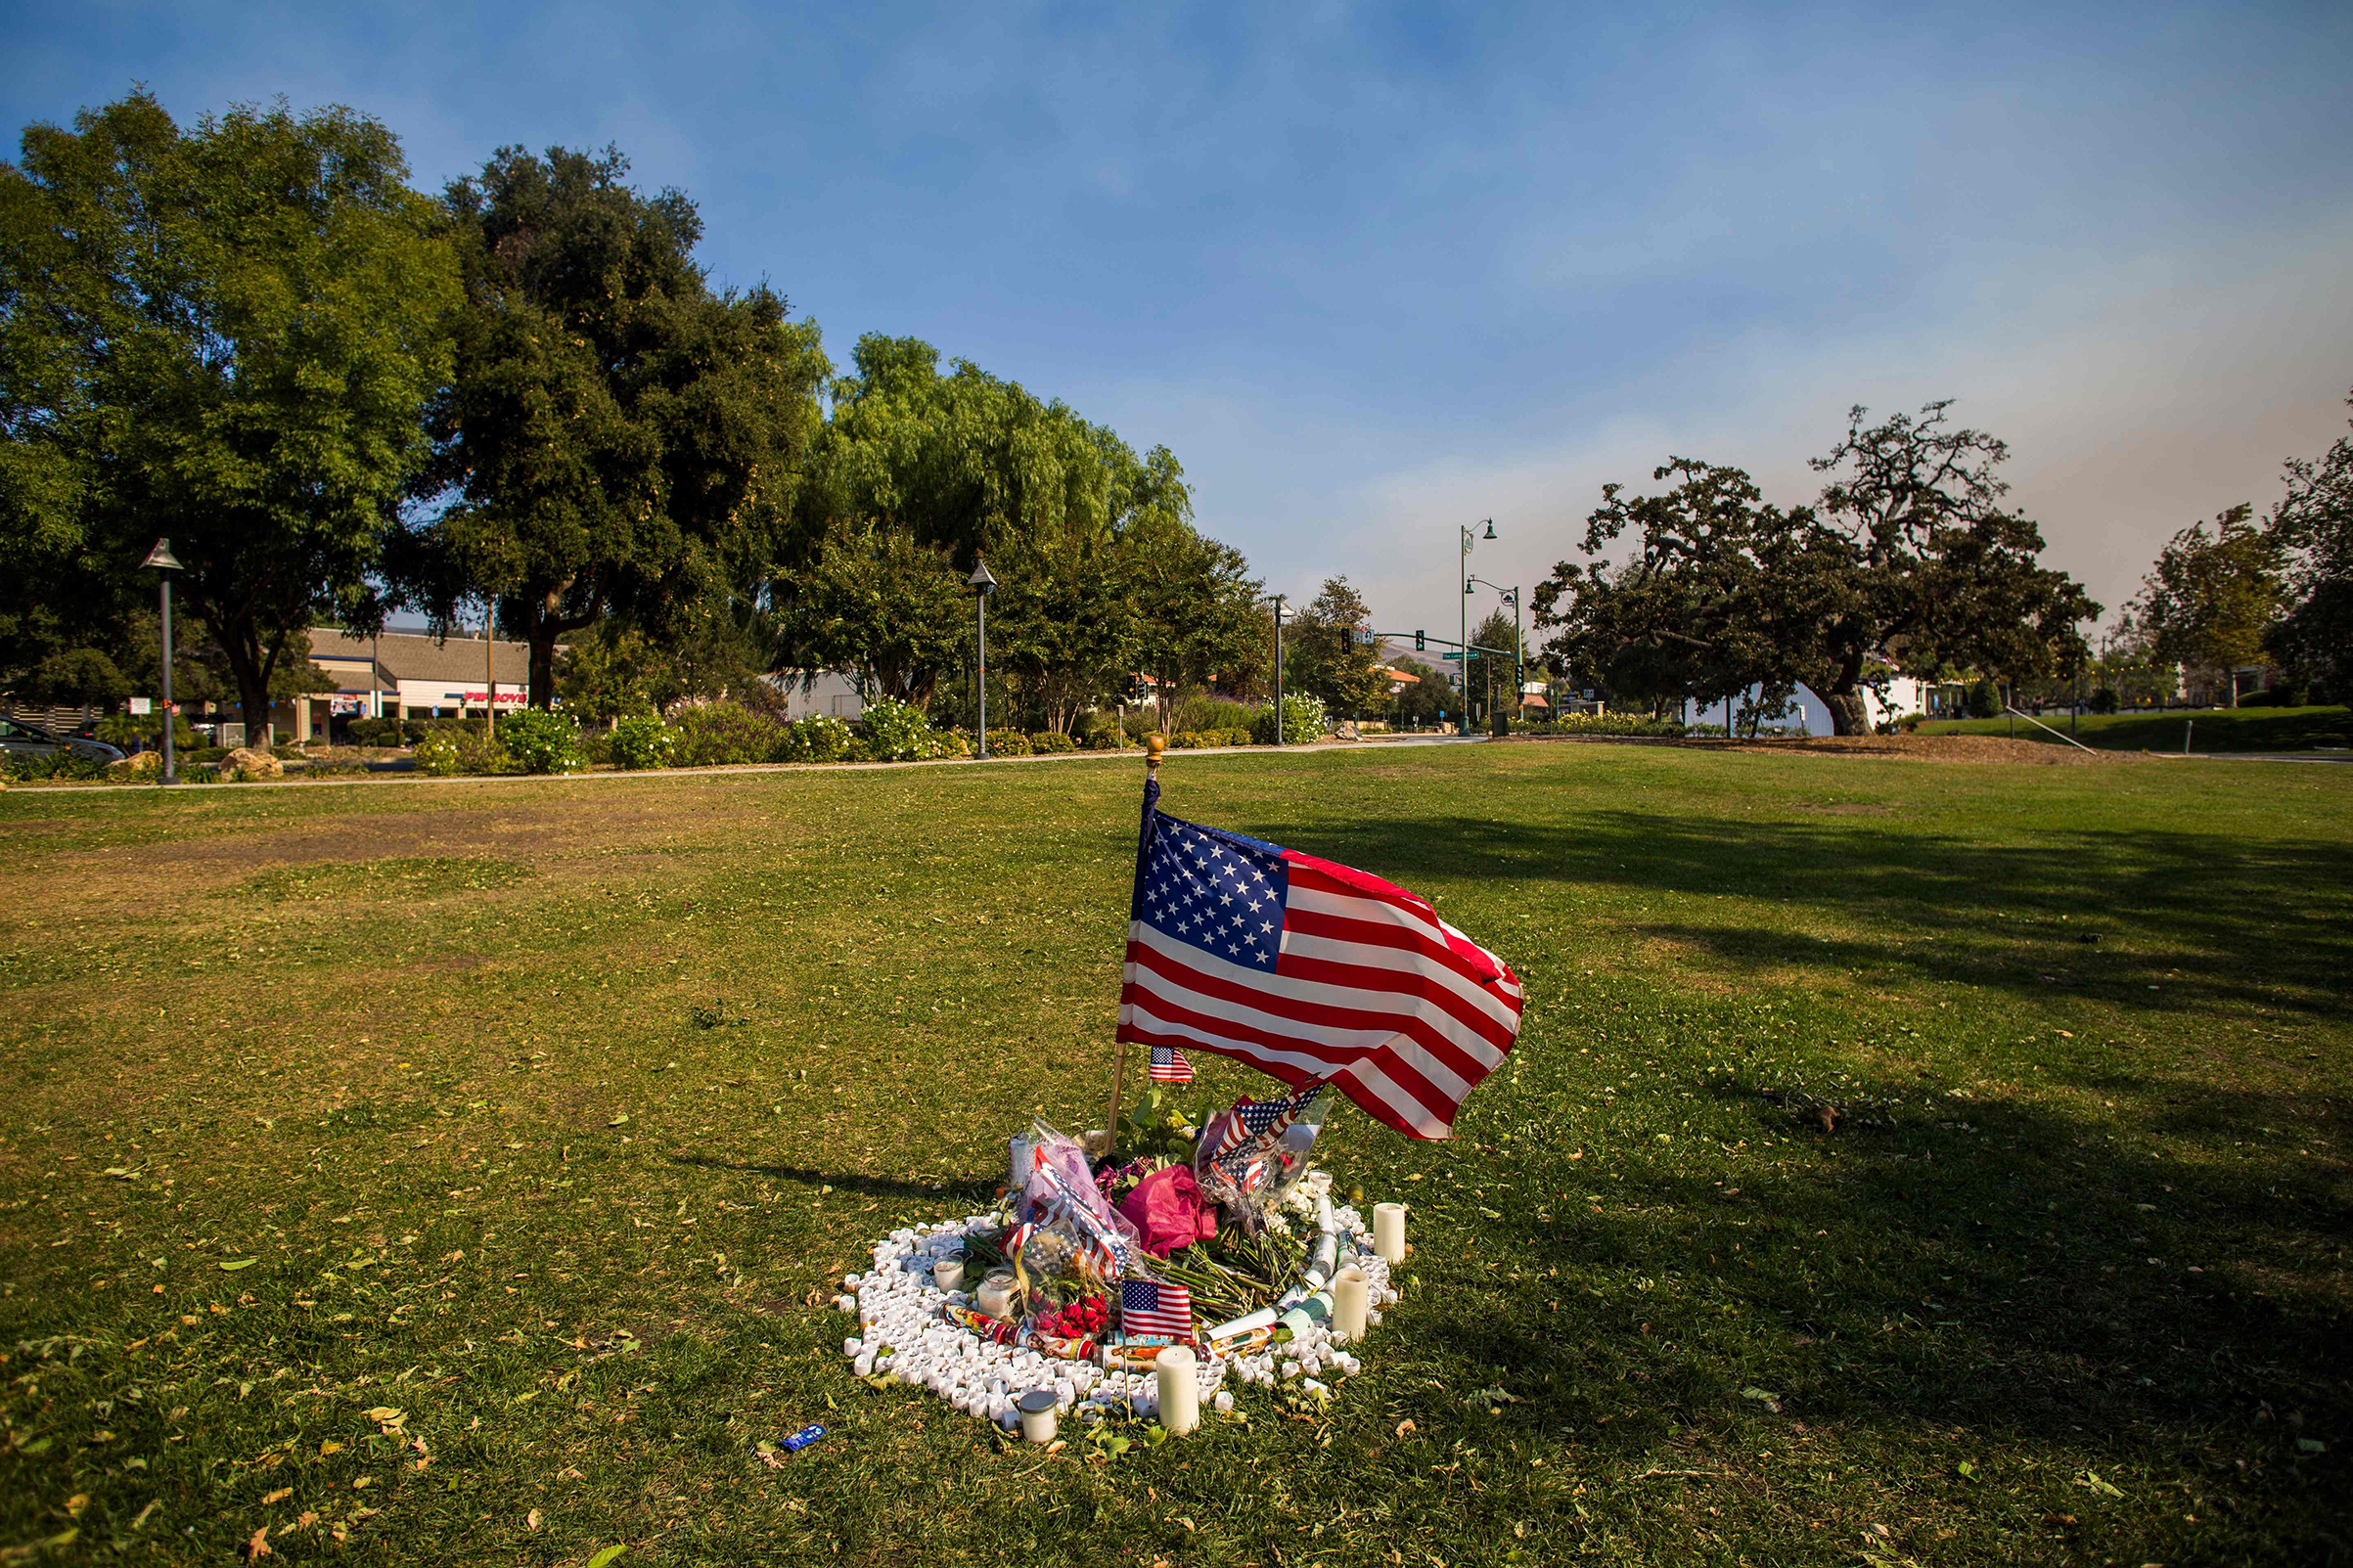 A memorial for the victims of the Thousand Oaks shooting